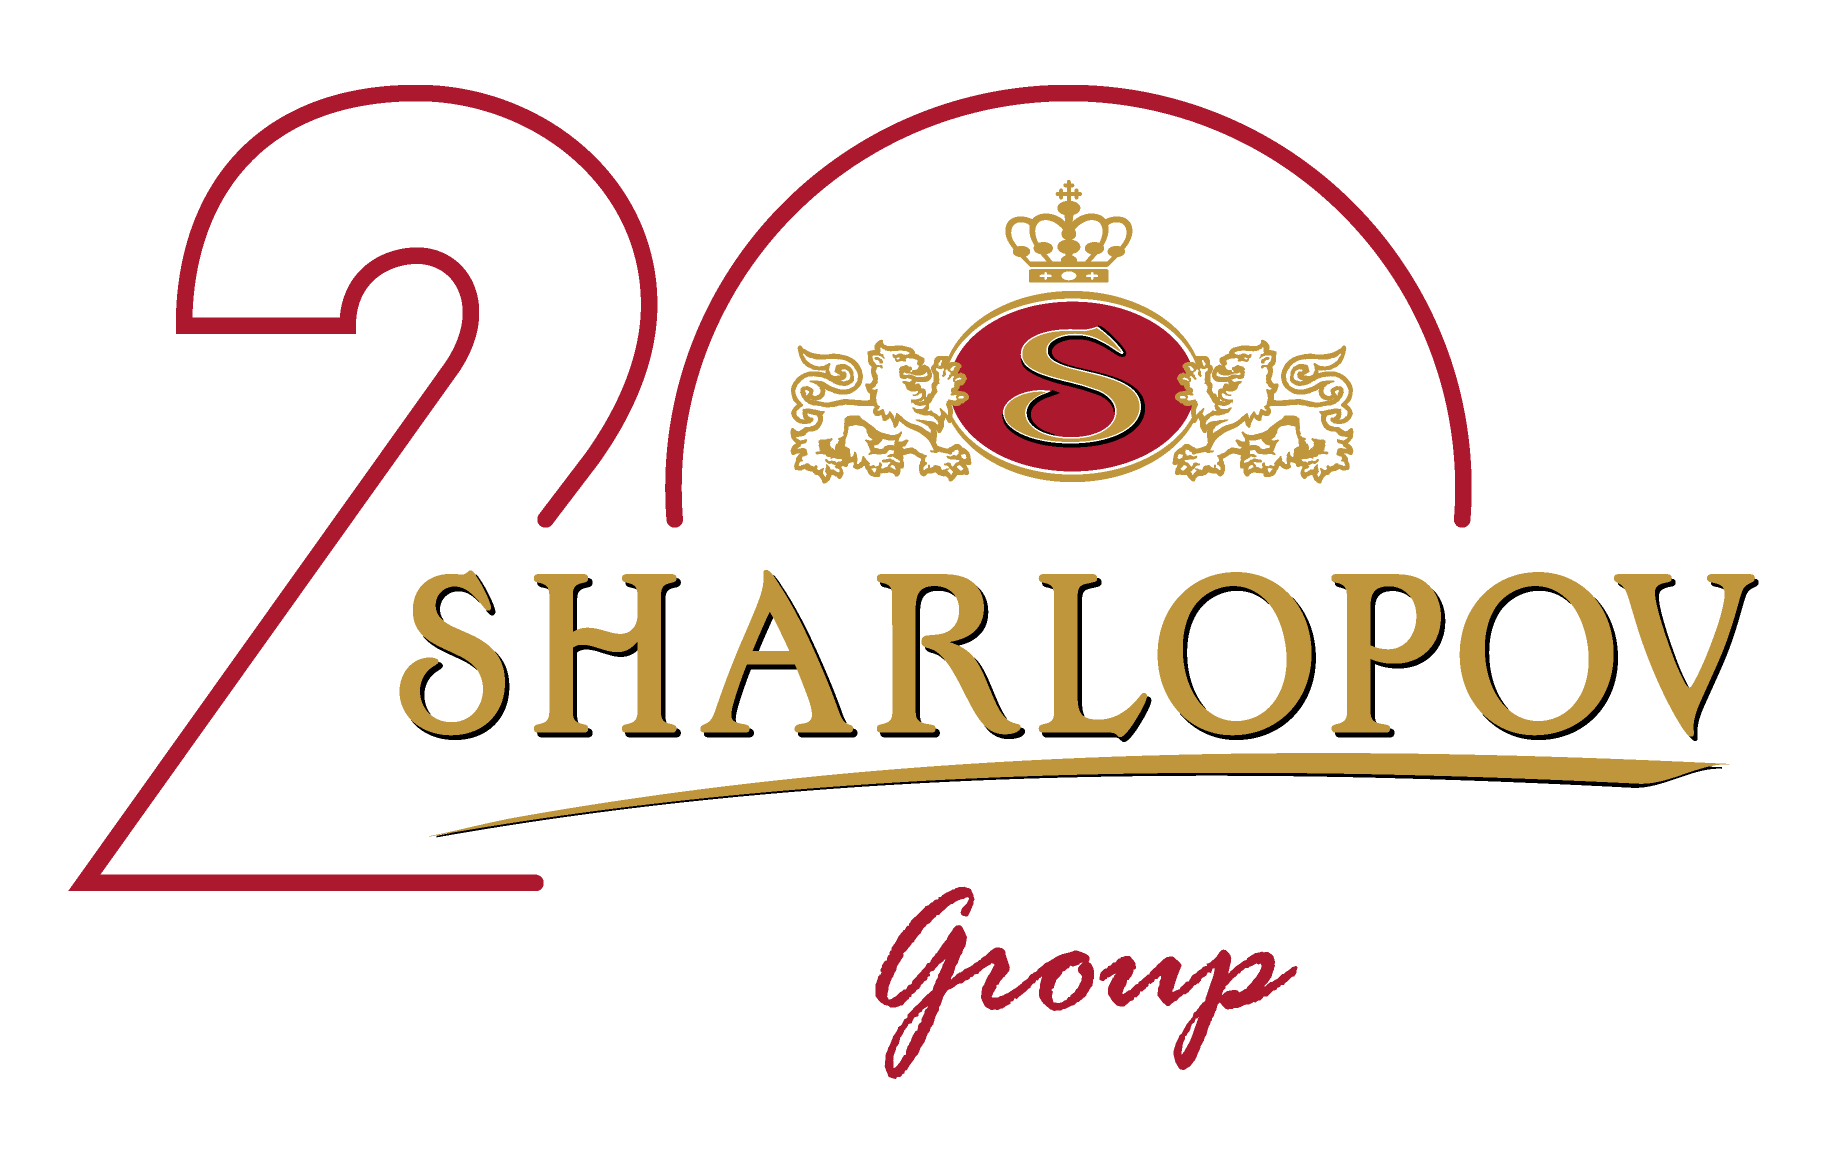 Sharlopov group - 20 years - Home away from home!